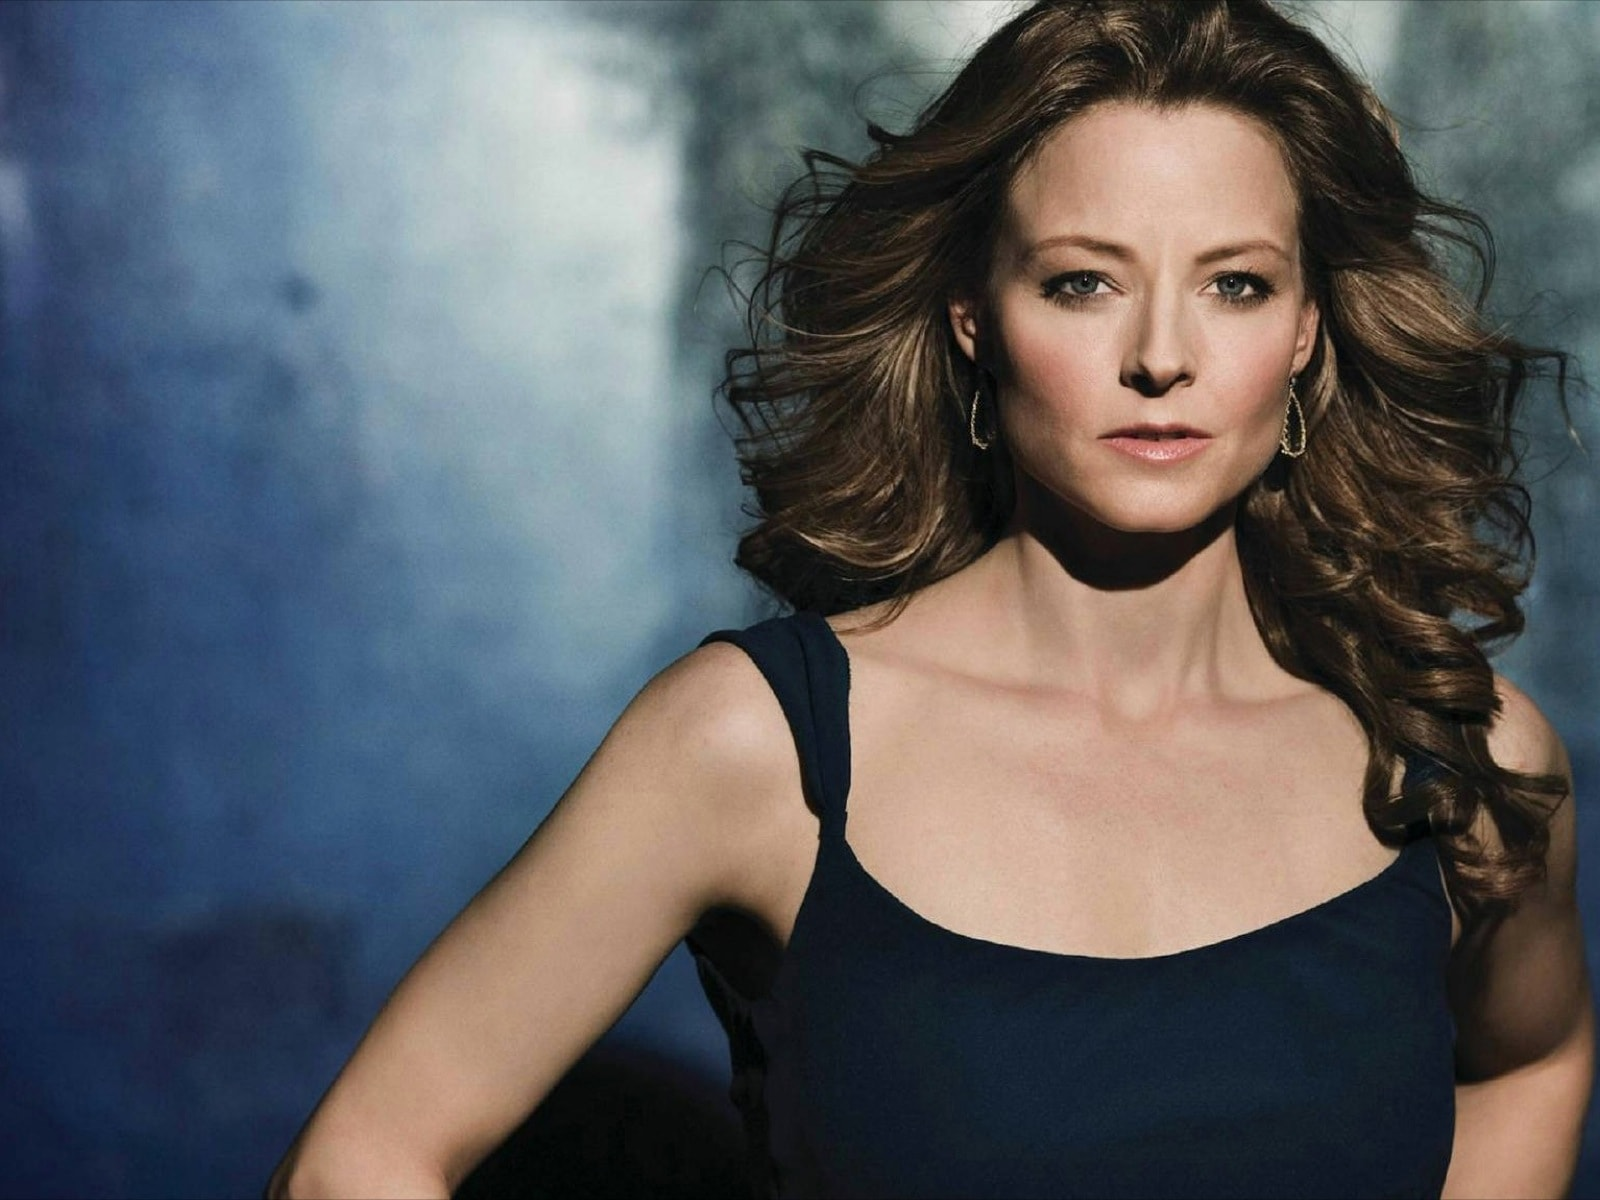 1600x1200 - Jodie Foster Wallpapers 8